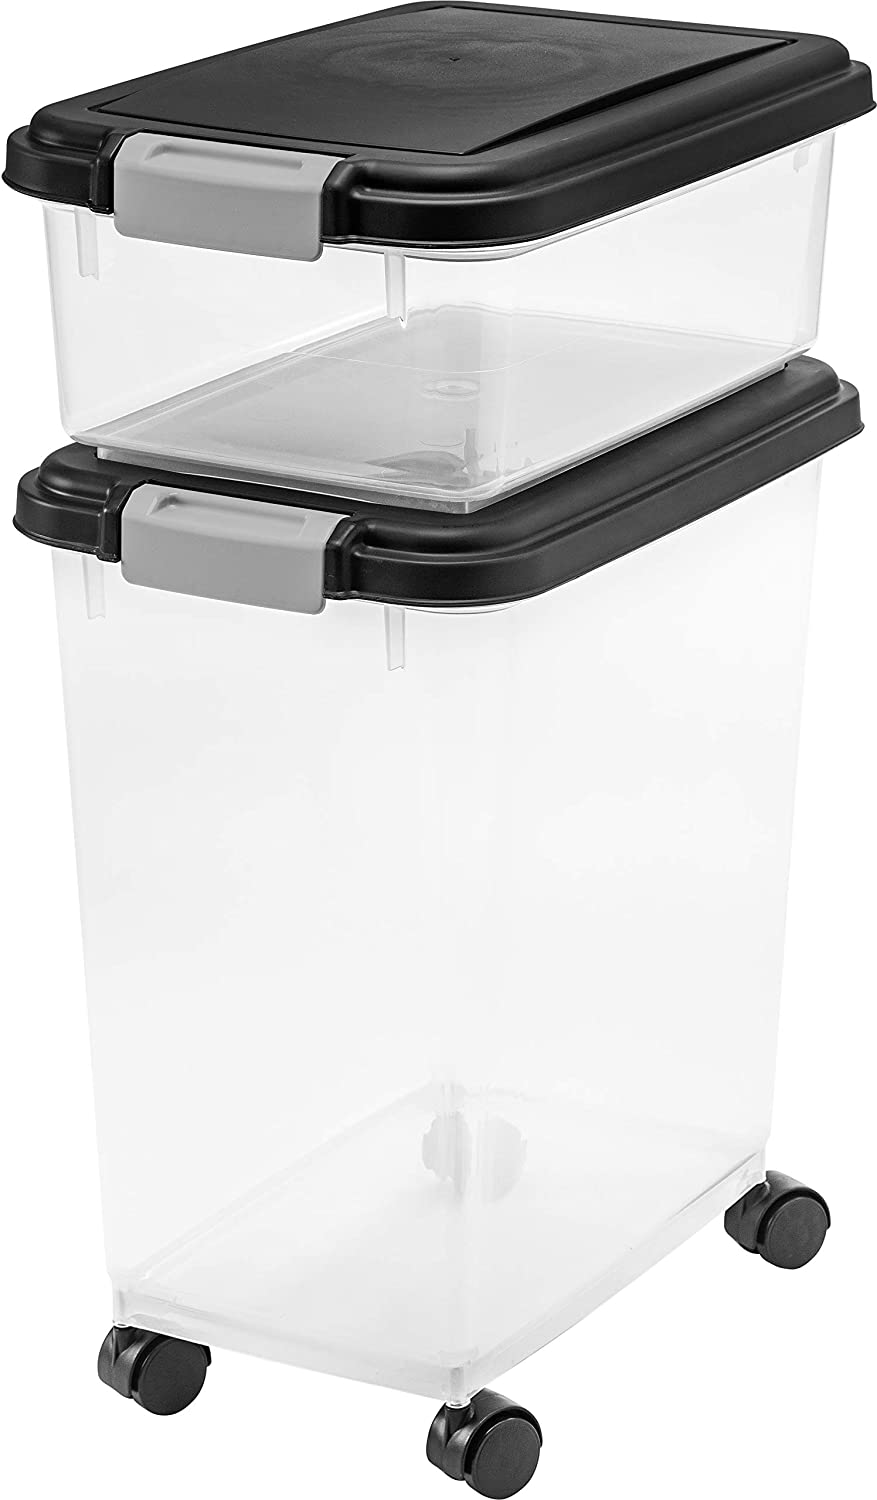 IRIS USA, Inc. Airtight Pet Food and Treat Storage Container Combo, Gray